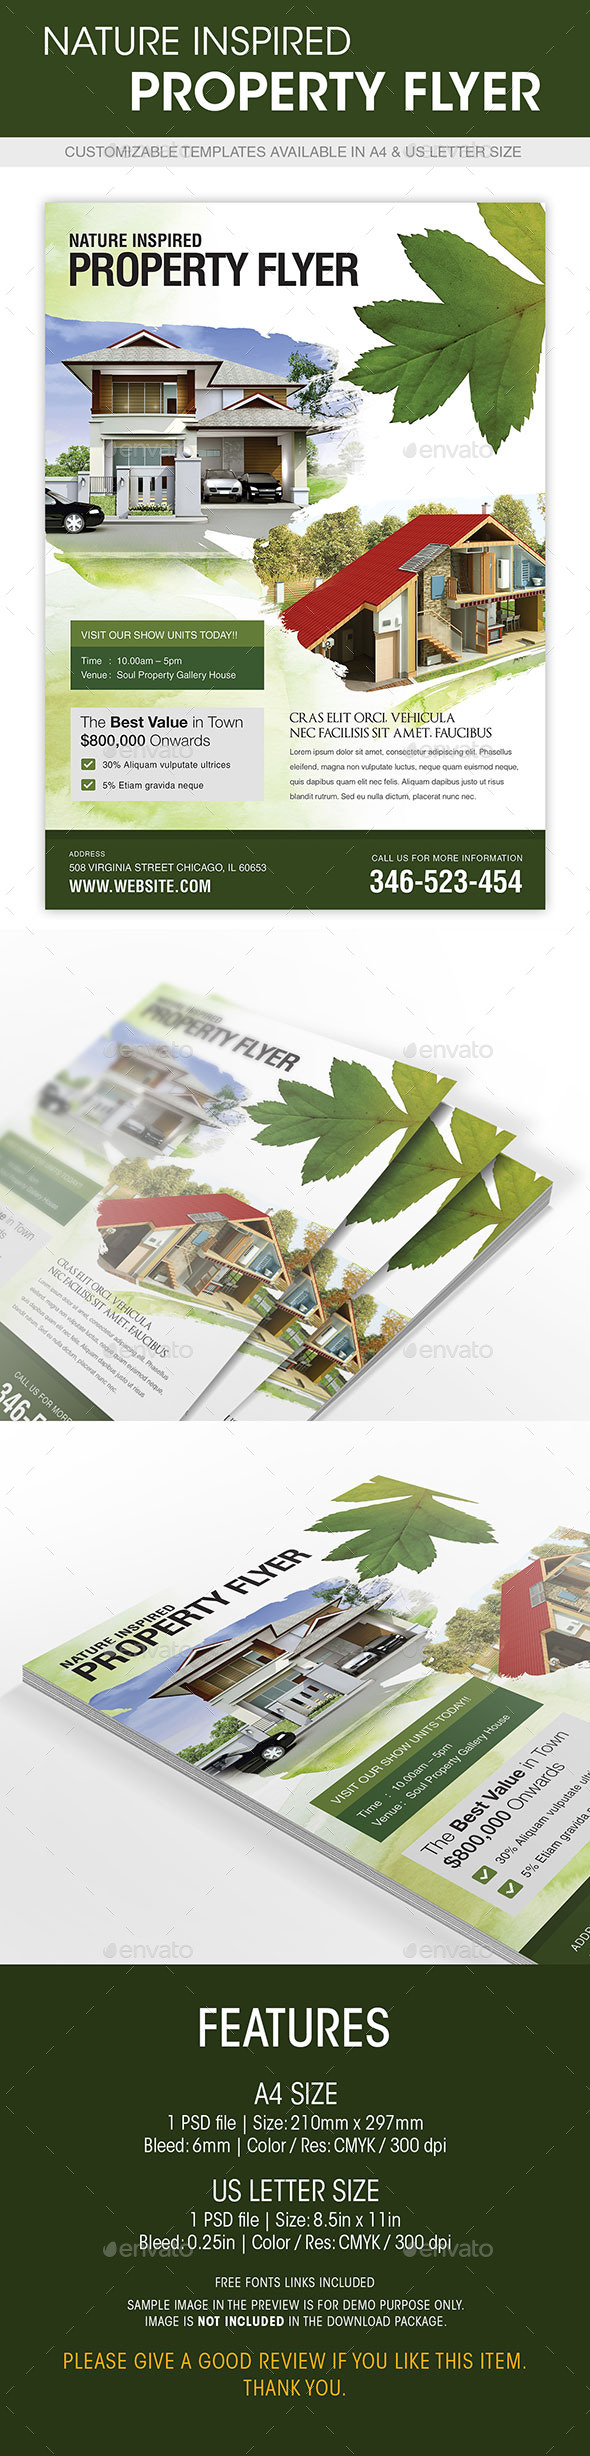 GraphicRiver Nature Inspired Property Flyer 8795804